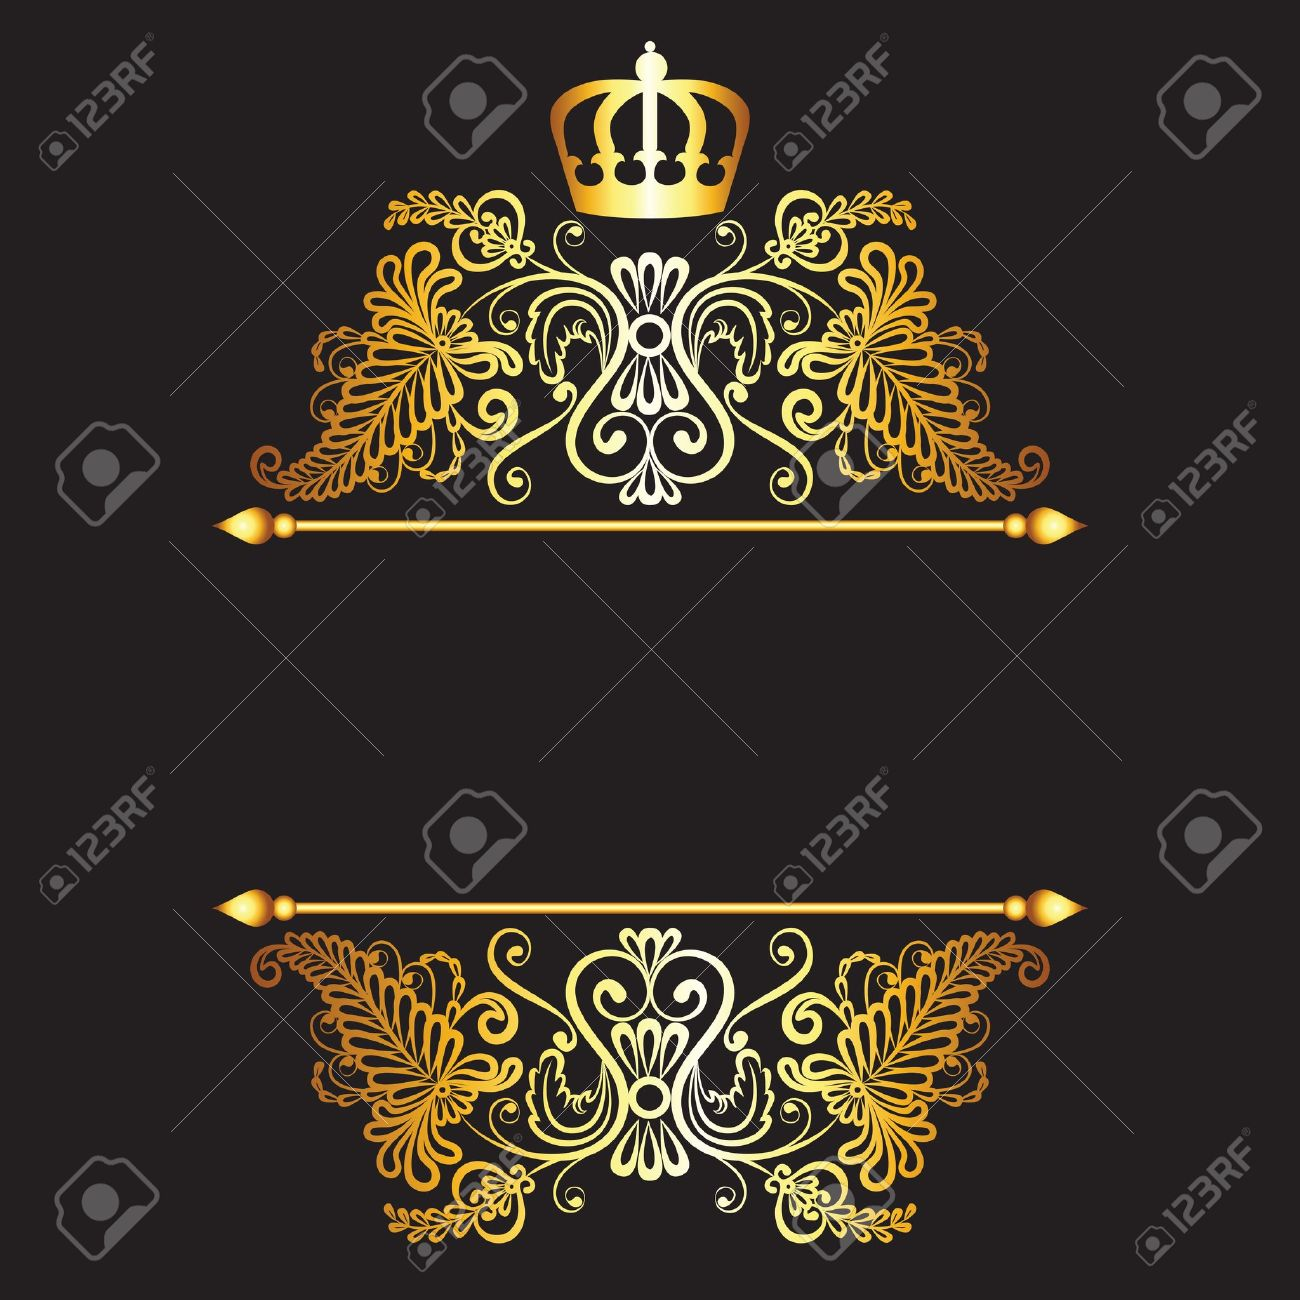 Royal pattern with crown  on dark background Stock Vector - 21570934